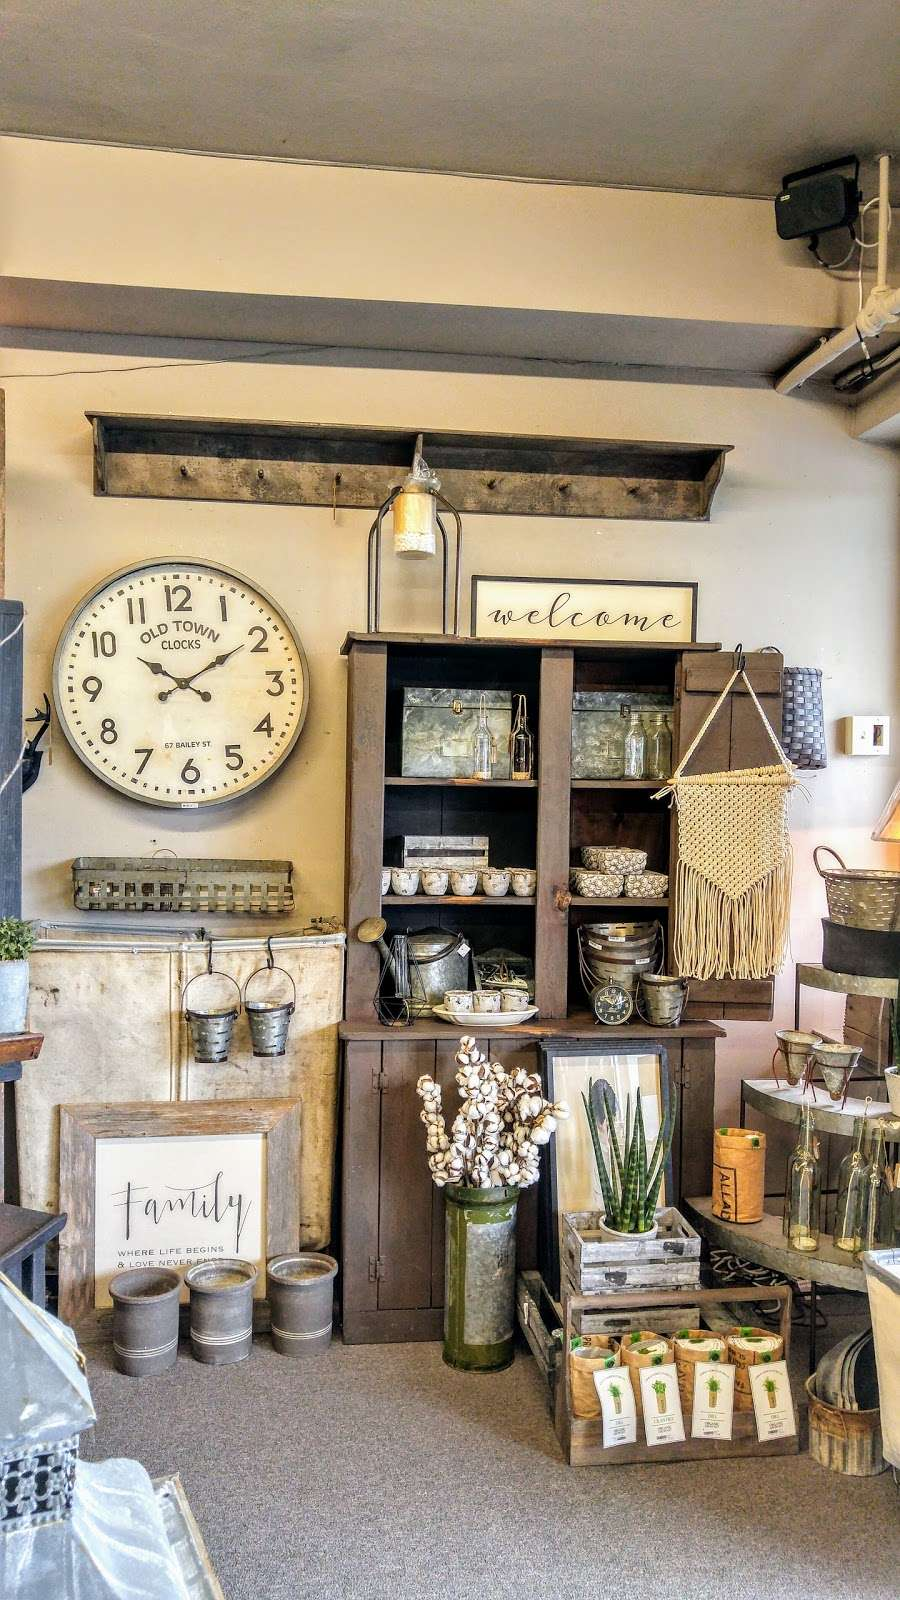 Cocalico Creek Country Store - home goods store  | Photo 5 of 10 | Address: 1037 N Reading Rd, Stevens, PA 17578, USA | Phone: (717) 336-5522